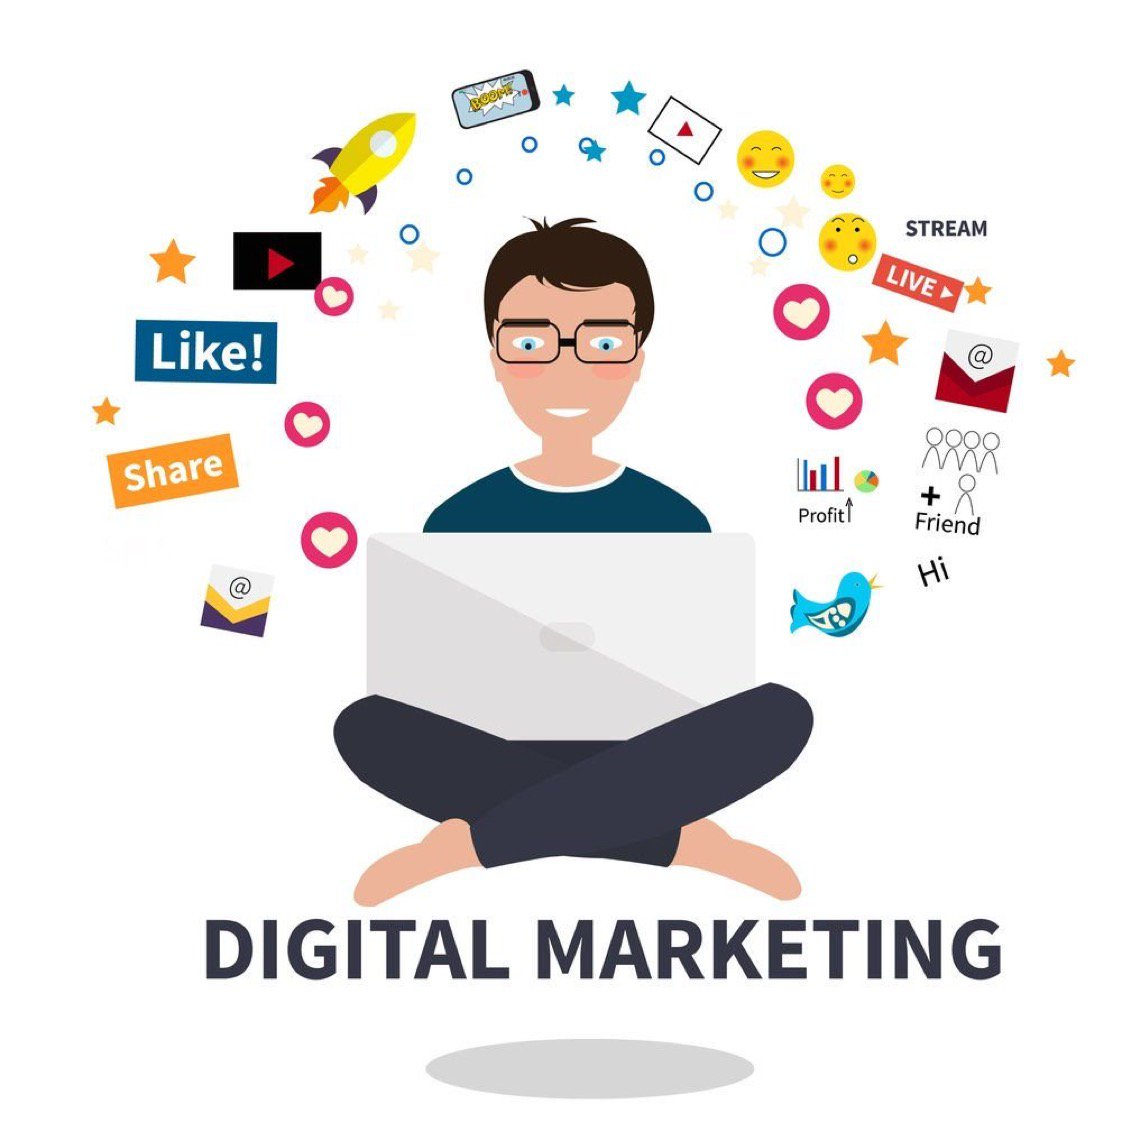 What Is Digital Marketing?  #GrowthHacking #defstar5  #Startups #SMM #SEM #PPC #SEO #SocialMedia #ContentMarketing<br>http://pic.twitter.com/JJfY3wzXch